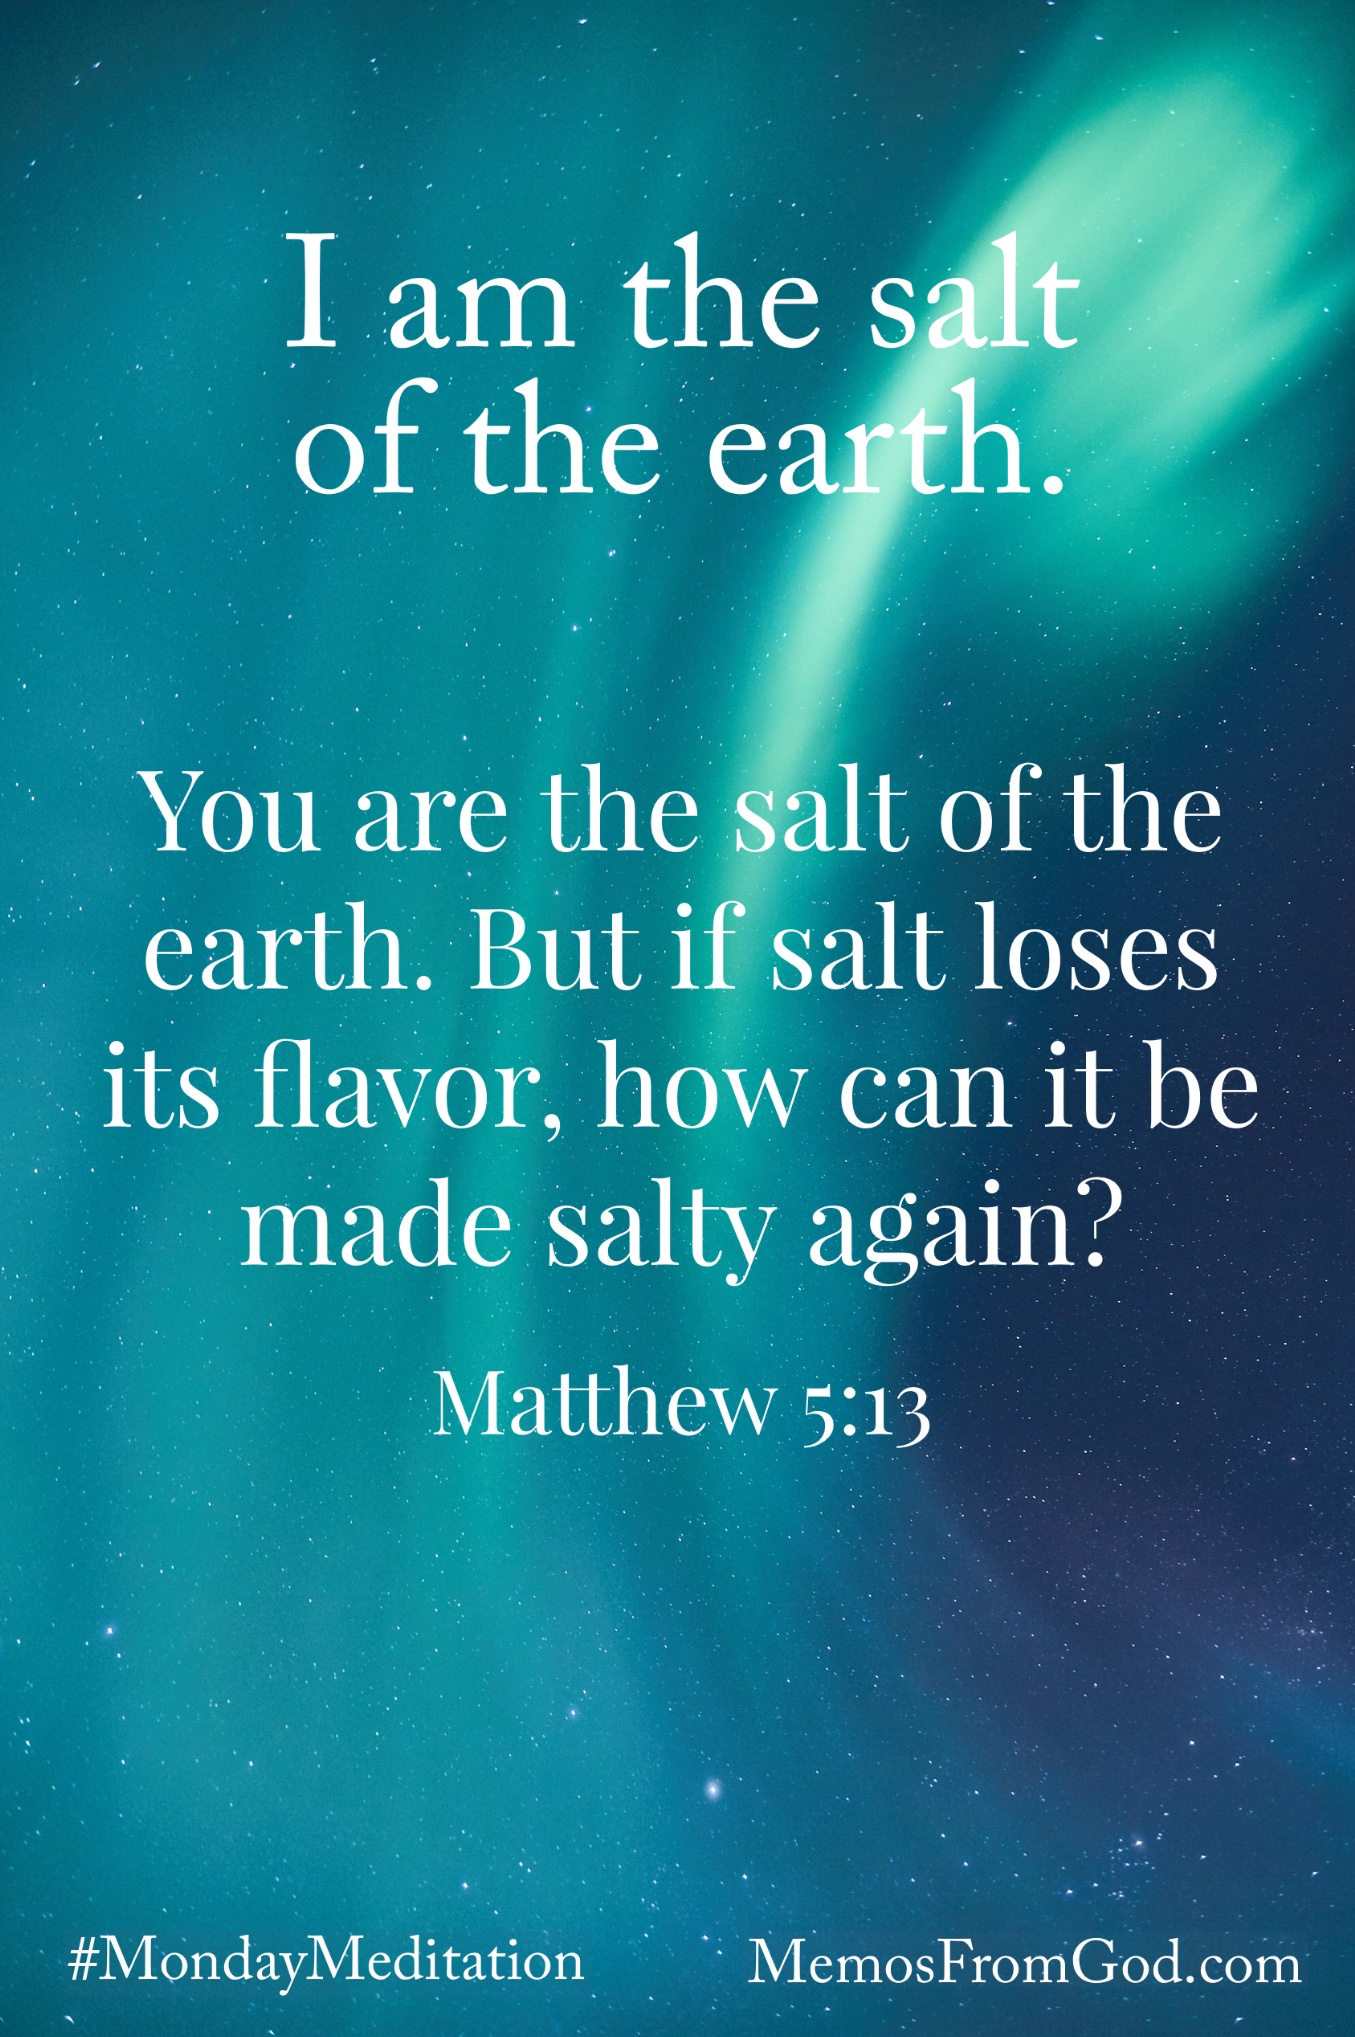 A sweep of bright green Northern Lights in a dark blue, starry sky. Caption: You are the salt of the earth. But if salt loses its flavor, how can it be made salty again? Matthew 5:13